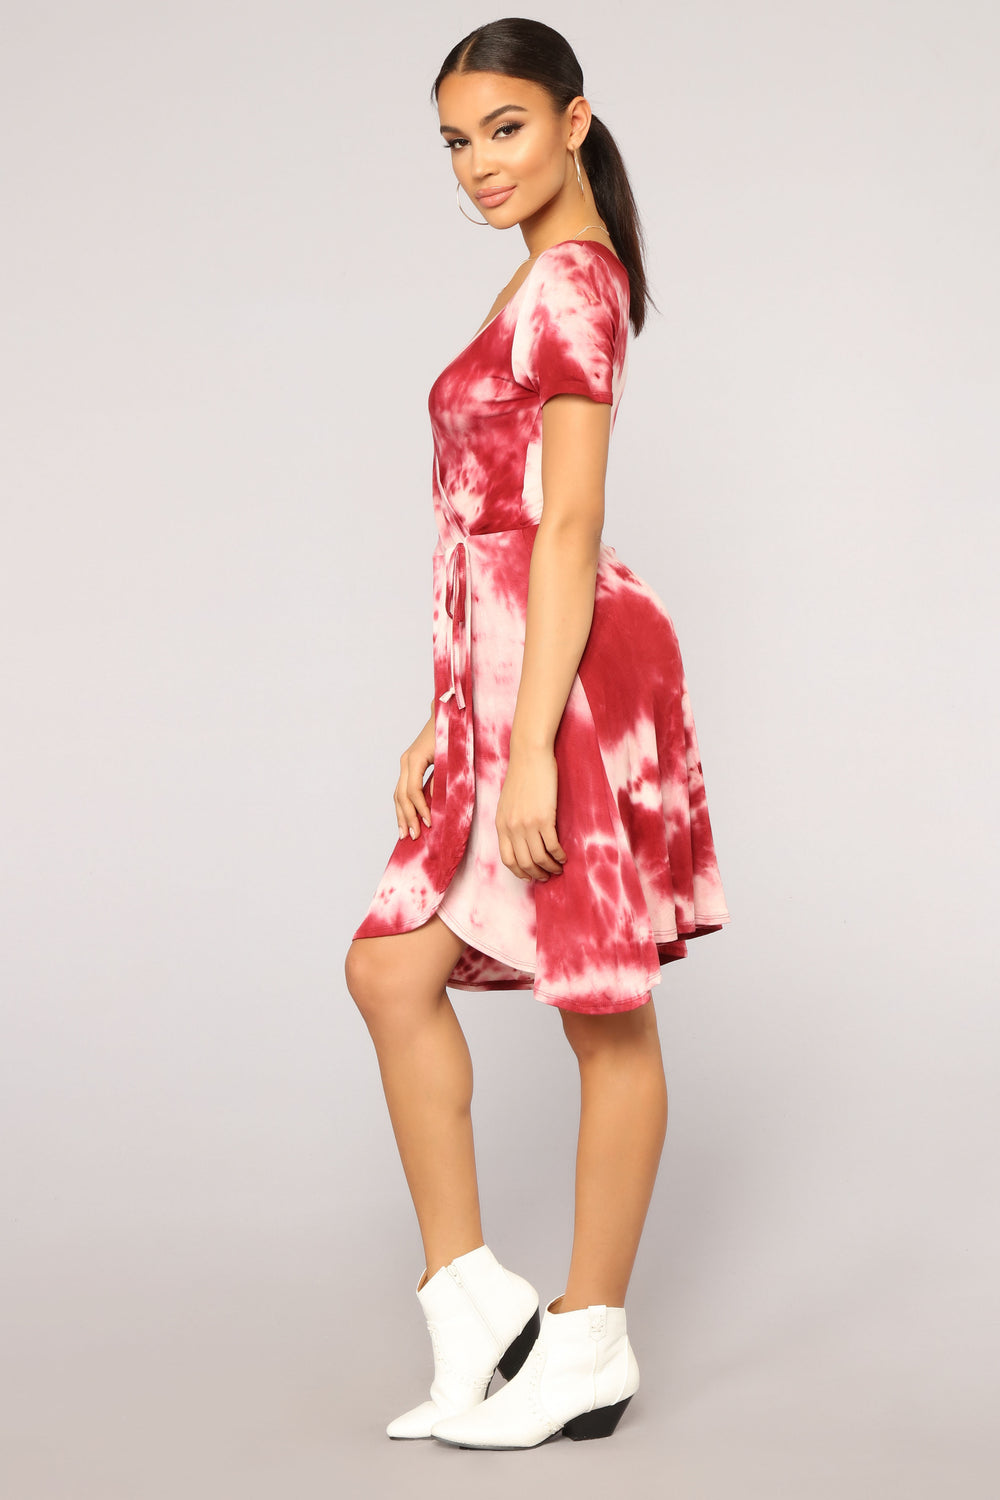 Wrap You Up Tie Dye Dress - Burgundy